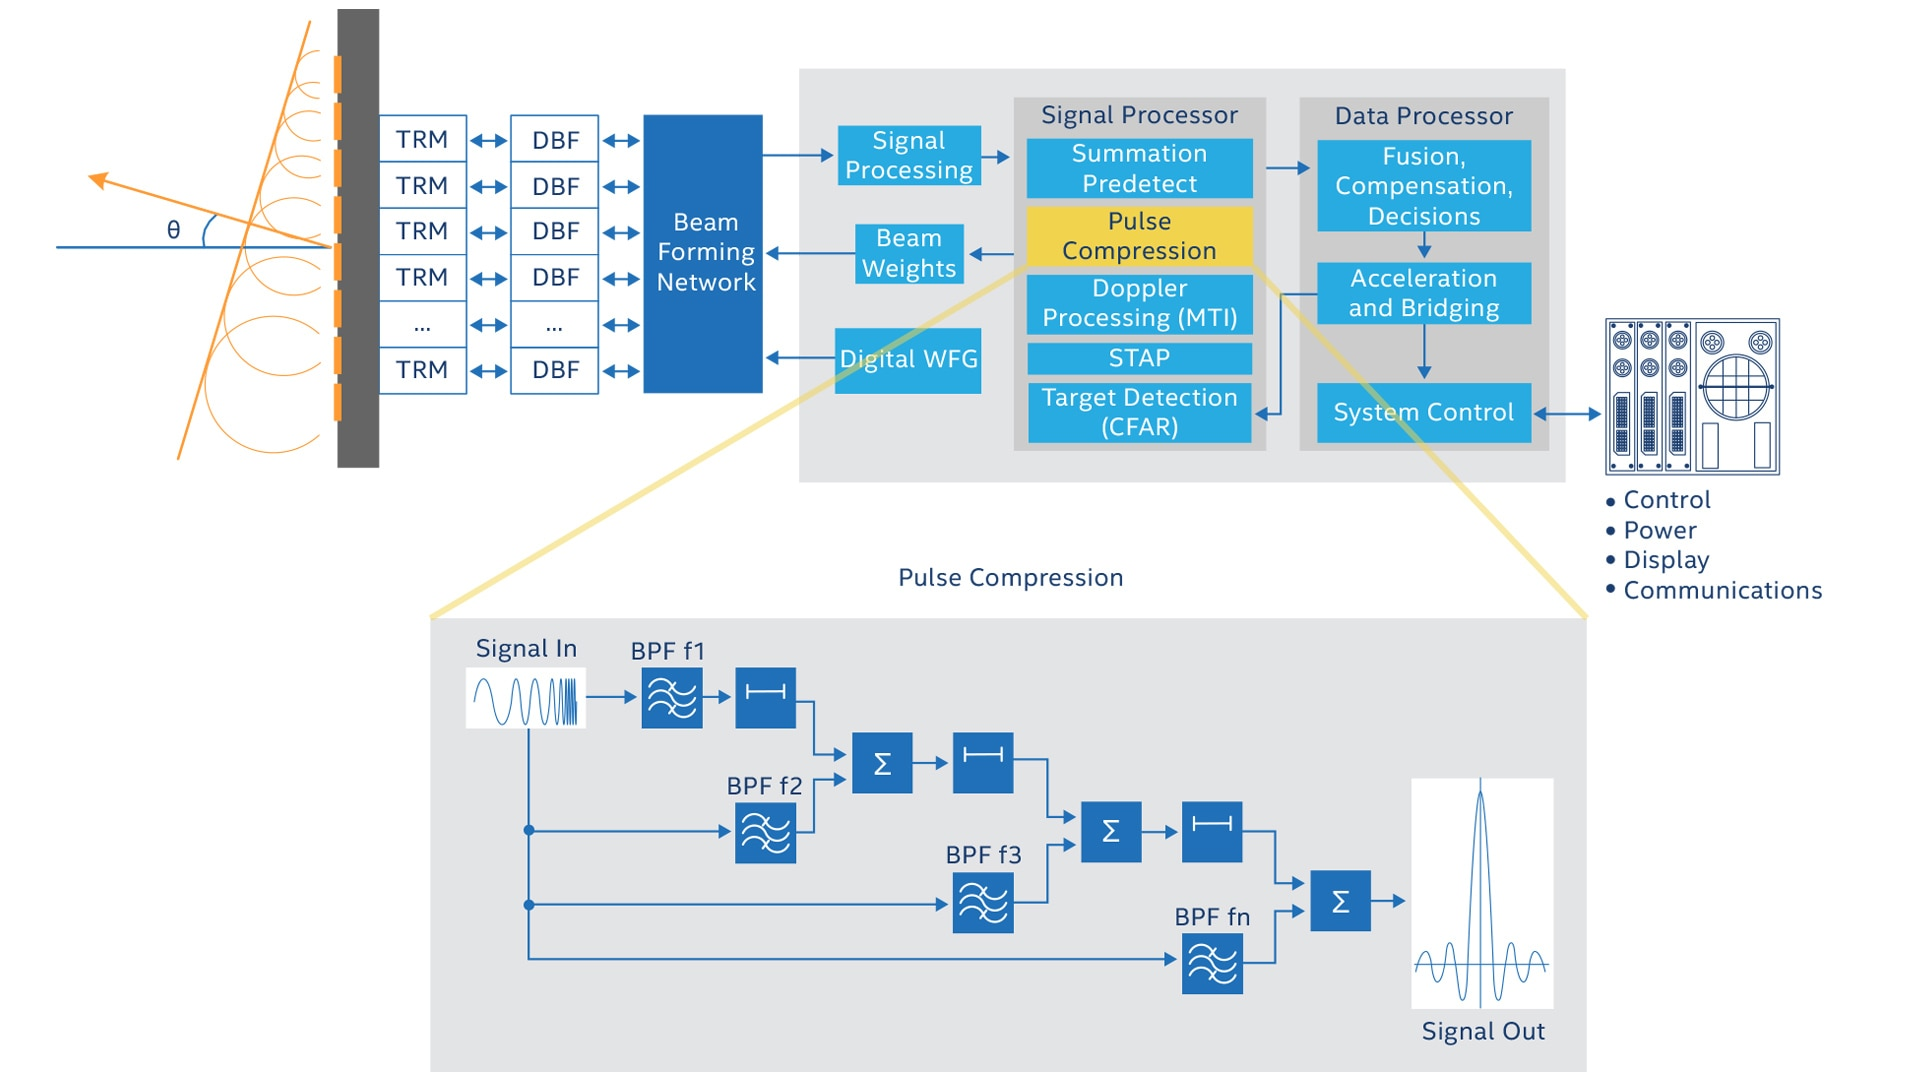 Fpga For Military Applications Intel This Picture Shows A Simple Schematic Of Beam Bridge It Is Radar Has Been Foundational Technology Area In Which The Semiconductor Industry Played Large Role Last Two Decades